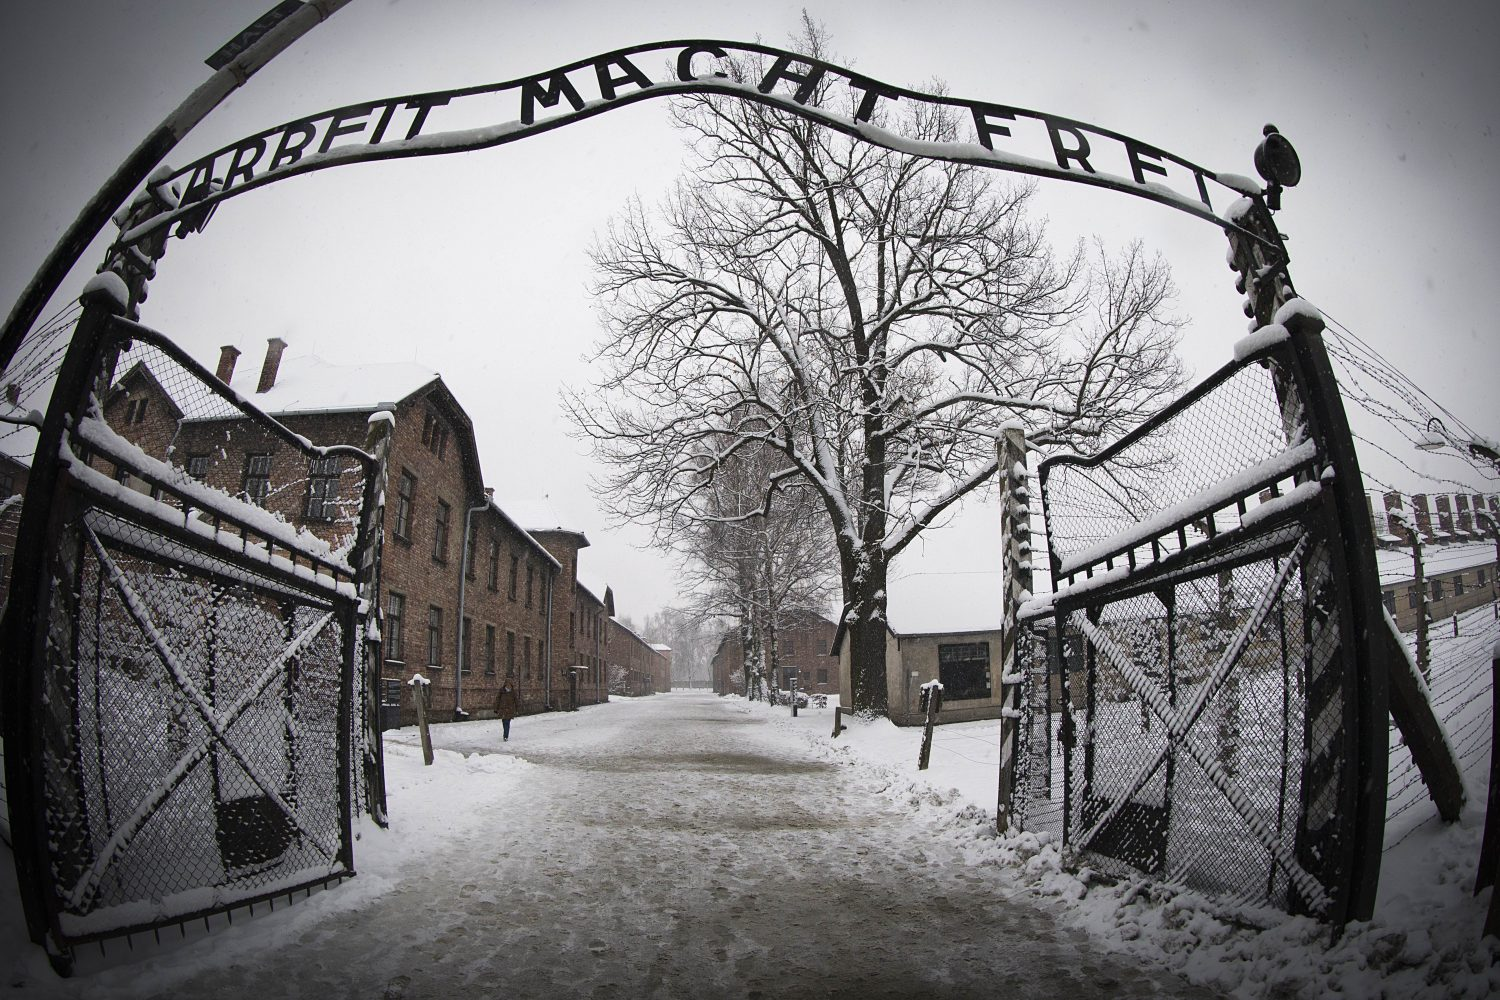 TOPSHOTS%0AA+woman+walks+through+snow+near+the+entrance+to+the+former+Nazi+concentration+camp+Auschwitz-Birkenau+with+the+lettering+%27Arbeit+macht+frei%27+%28%27Work+makes+you+free%27%29+in+Oswiecim%2C+Poland+on+January+25%2C+2015%2C+days+before+the+70th+anniversary+of+the+liberation+of+the+camp+by+Russian+forces.+AFP+PHOTO+%2F+JOEL+SAGET